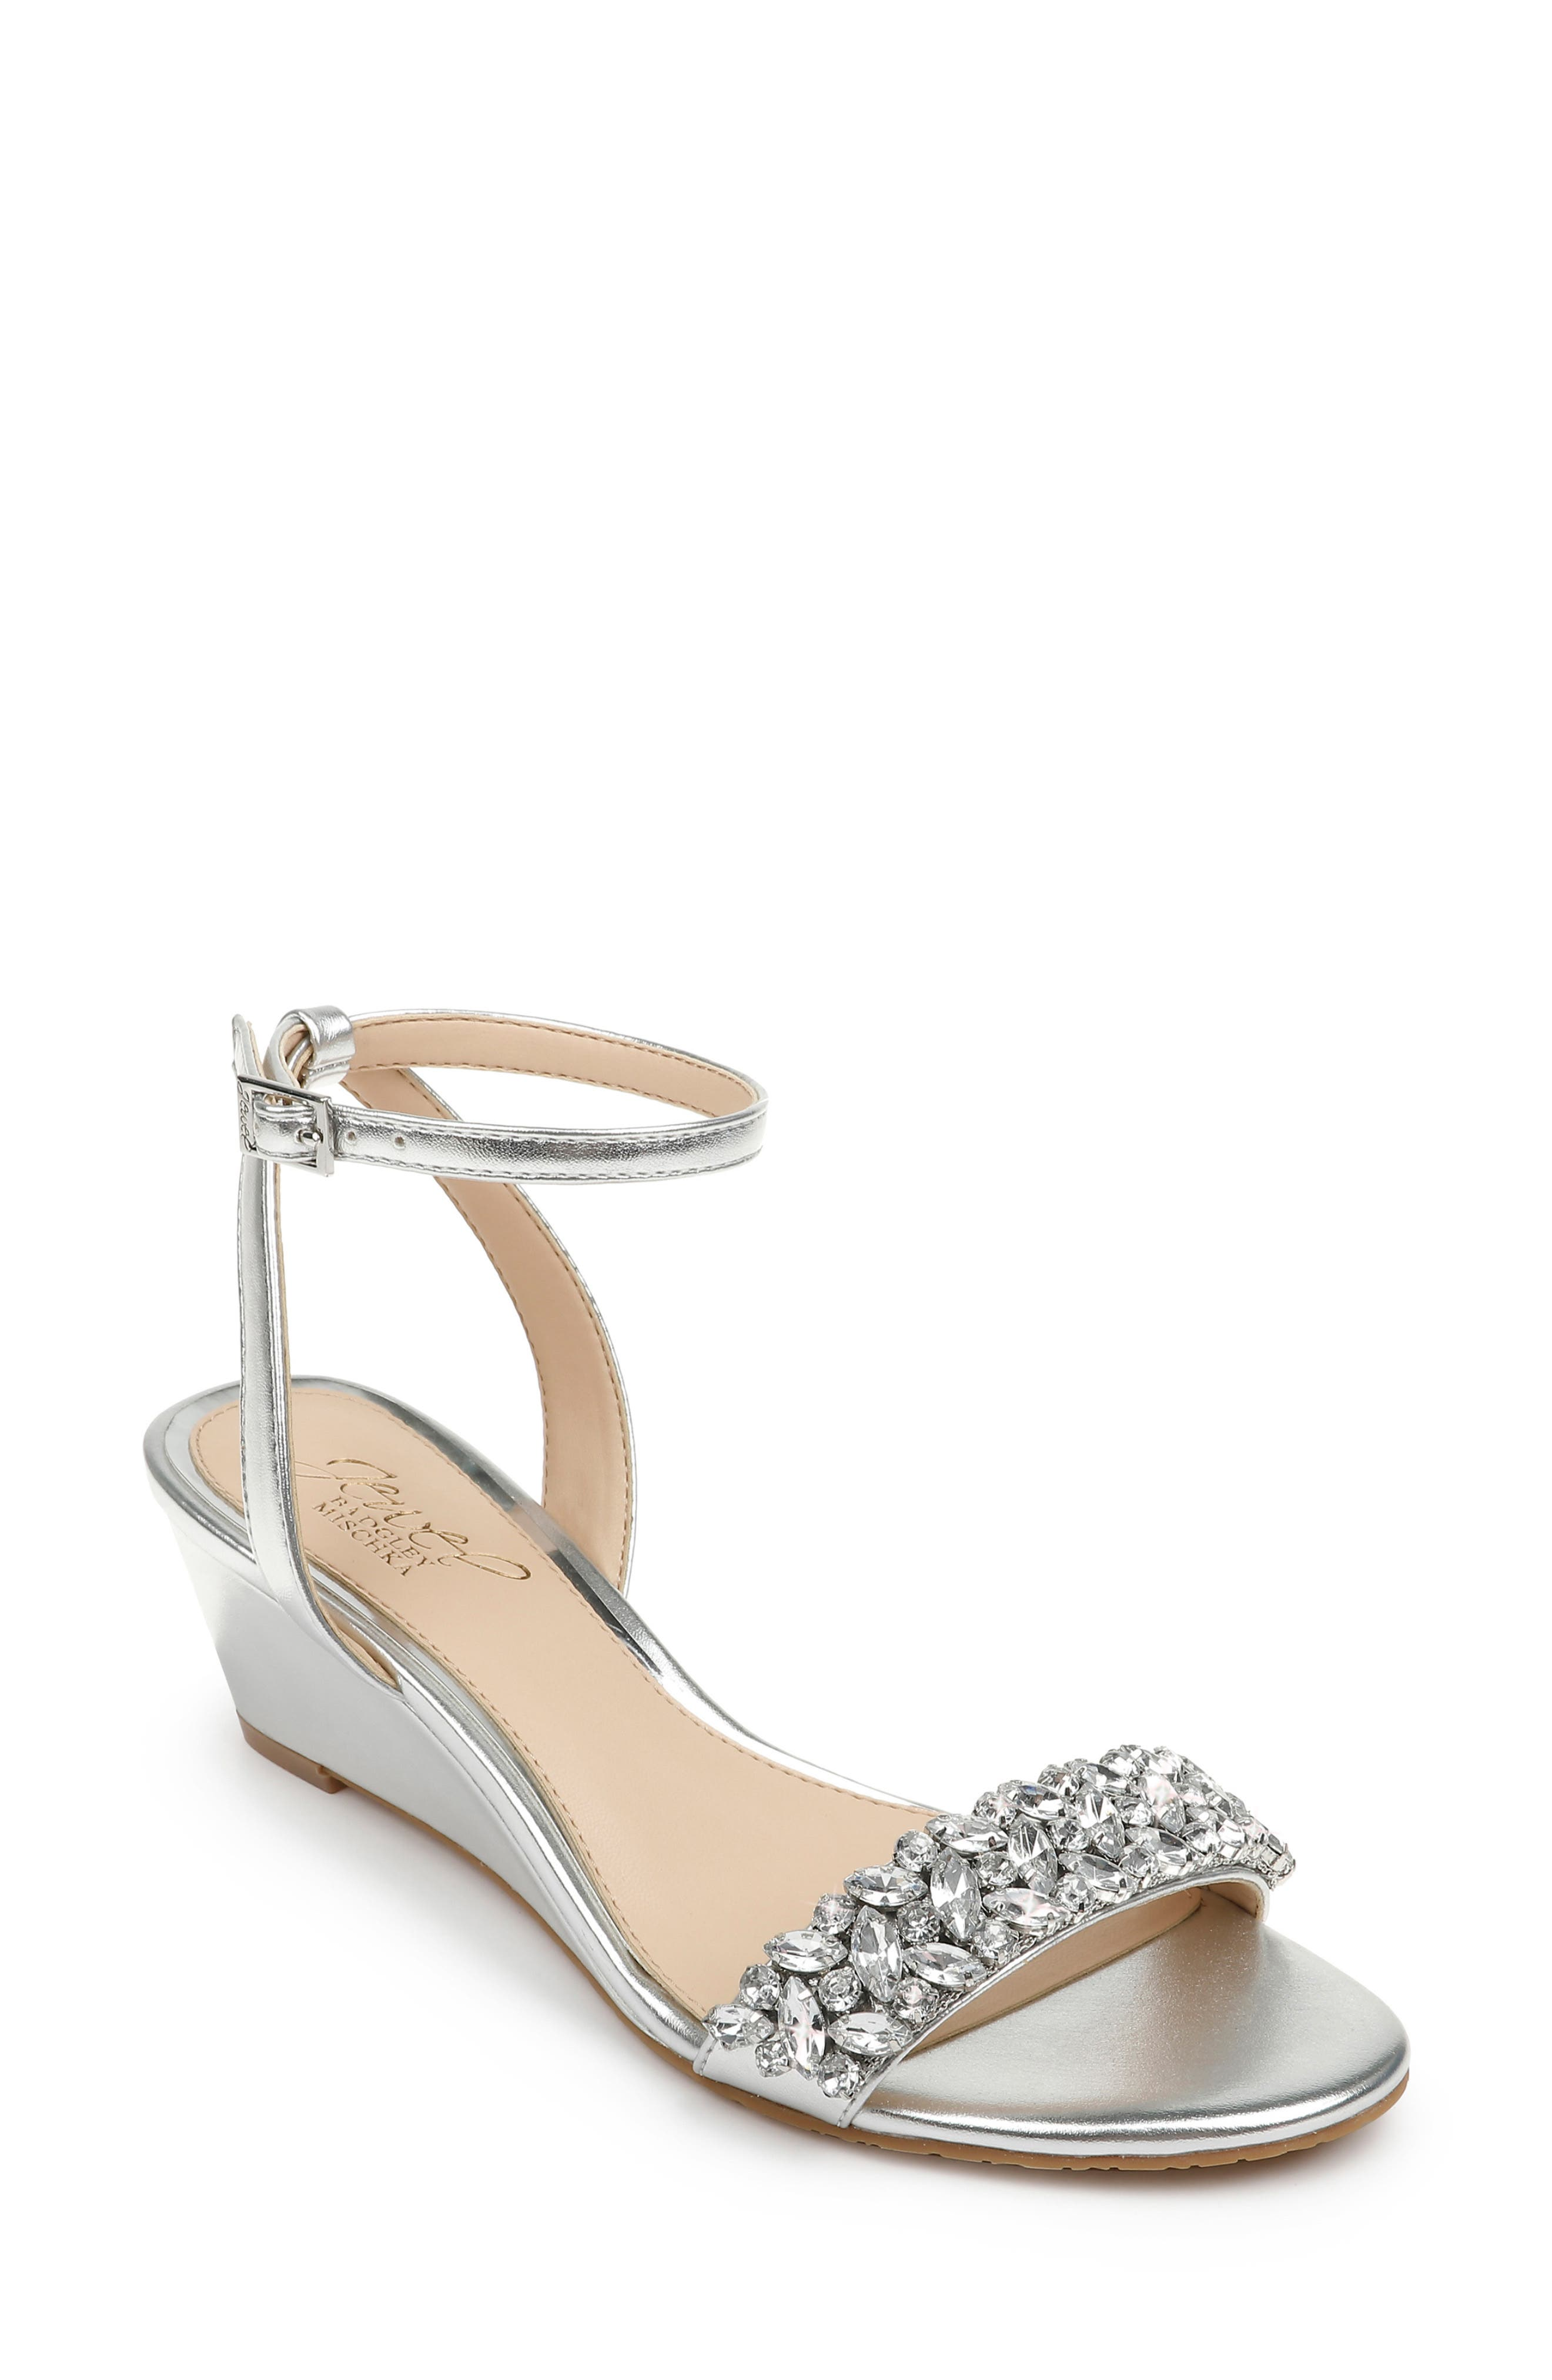 Sparkling crystals embellish the toe of a glamorous wedge sandal secured by a svelte strap at the ankle. Style Name: Jewel Badgley Mischka Bellevue Ankle Strap Wedge Sandal (Women). Style Number: 5959479. Available in stores.